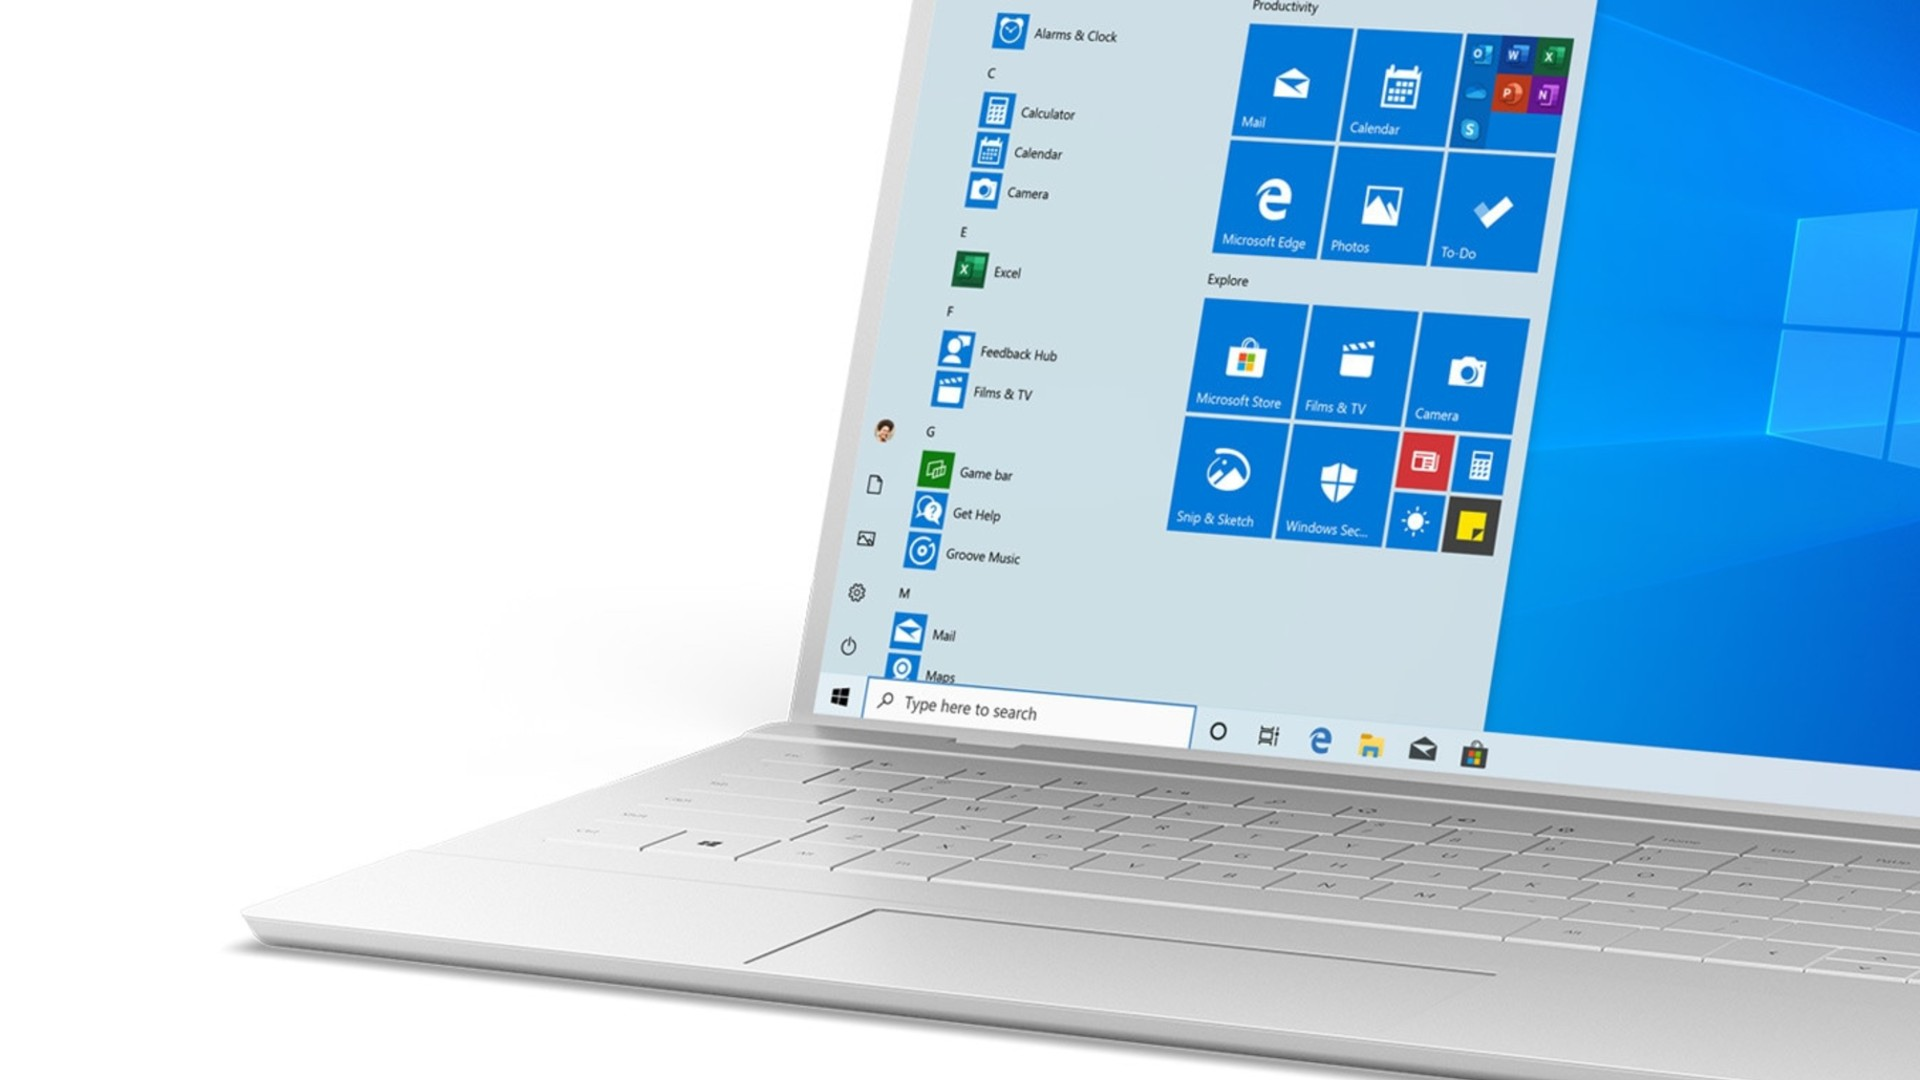 Windows 10 and Windows 11 vulnerability lets any user access admin privileges